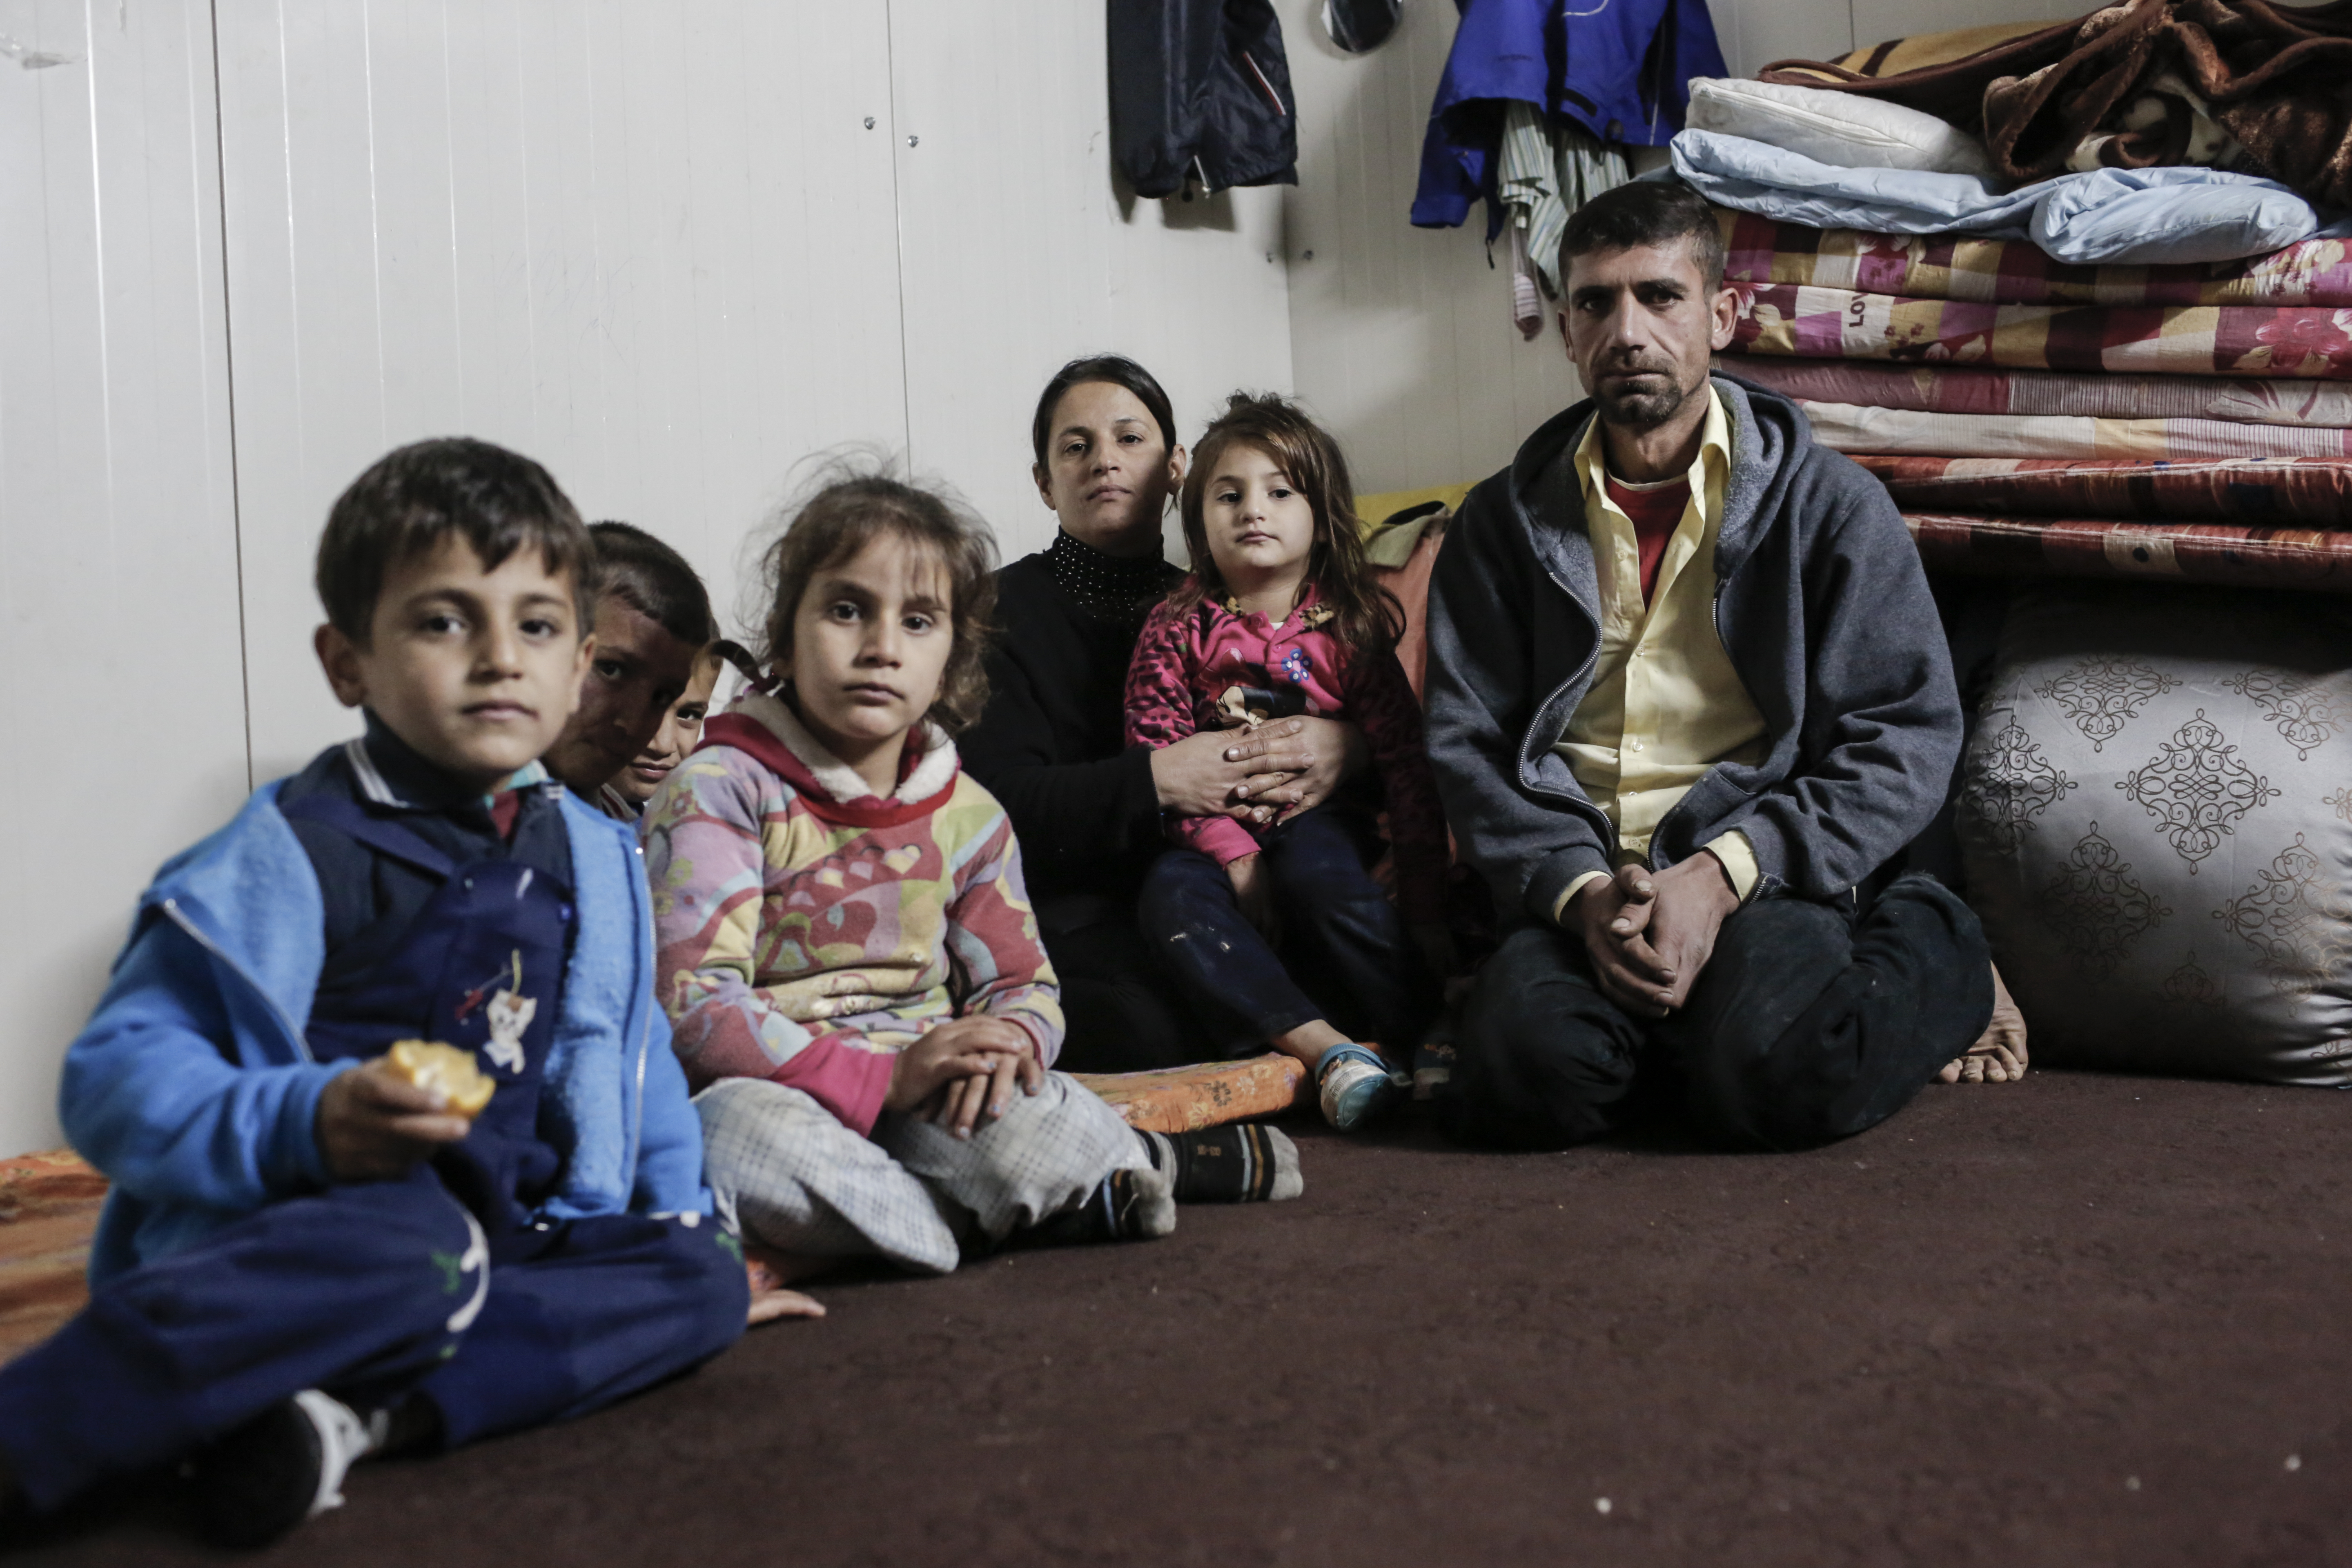 An Iraqi family who have been forced from their home by fighting, who now receive support from CAFOD's partner.